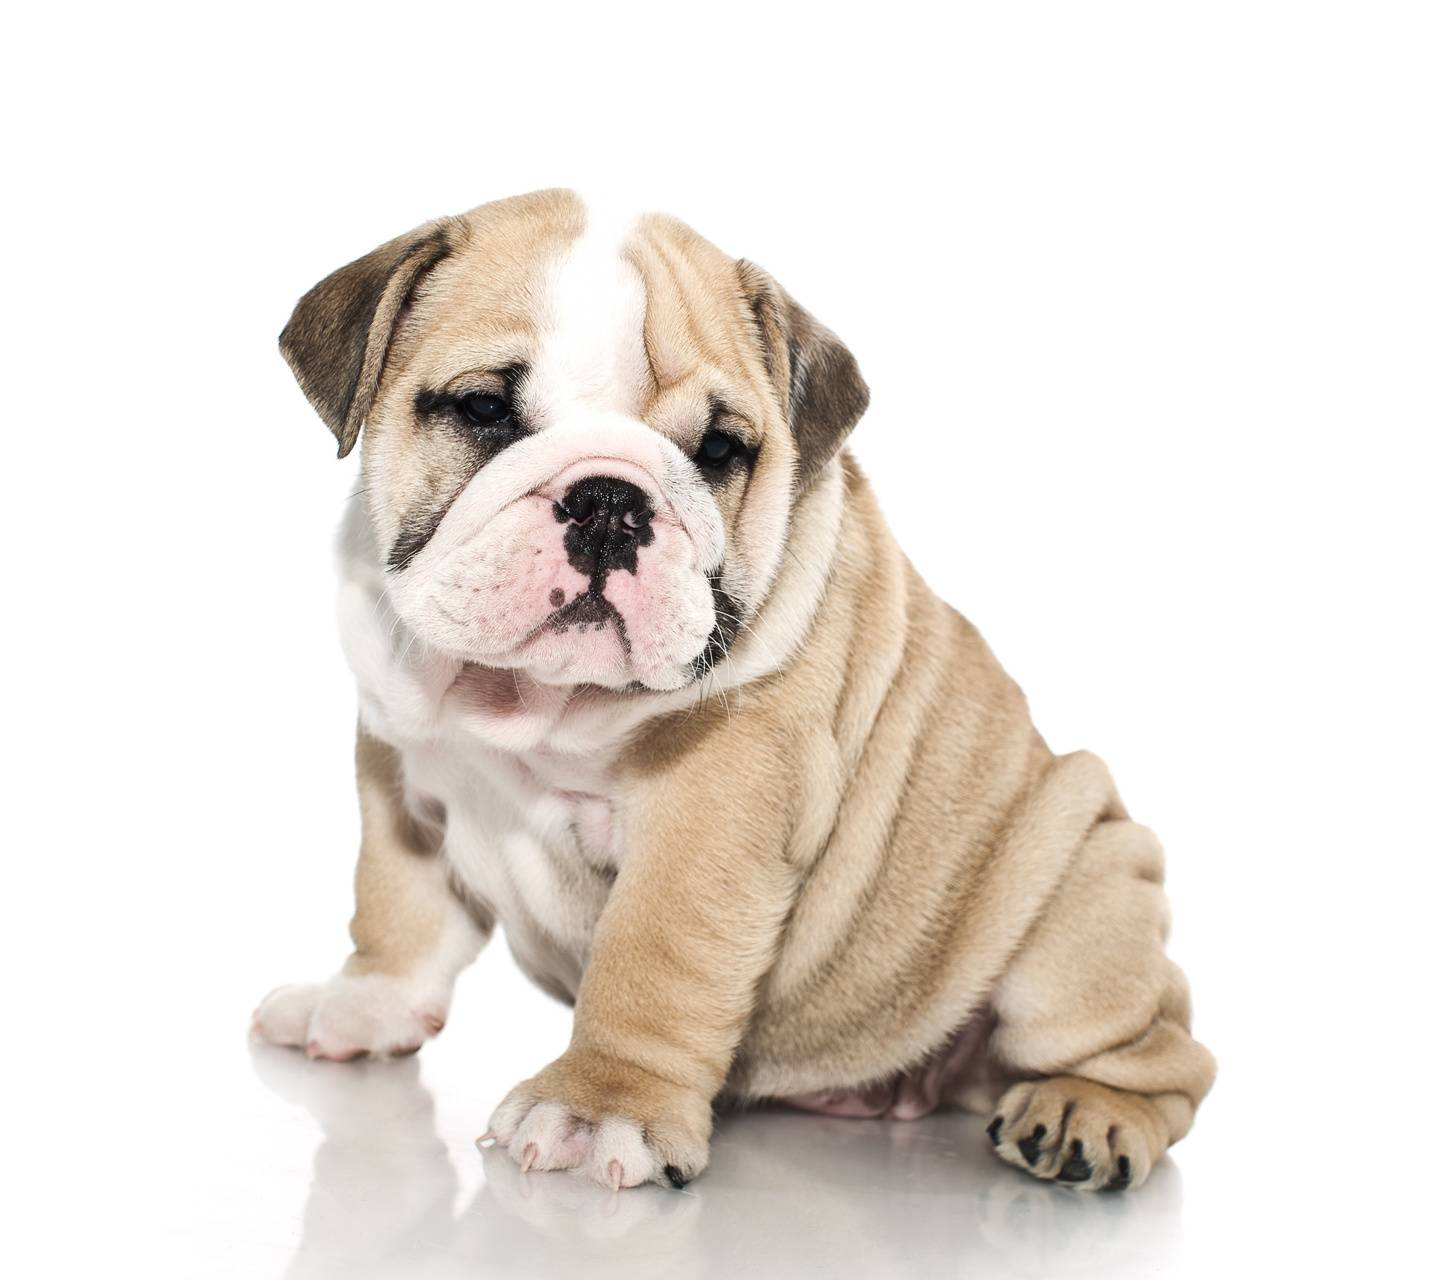 Bulldog Dog Wallpaper By Hsncmb 47 Free On Zedge